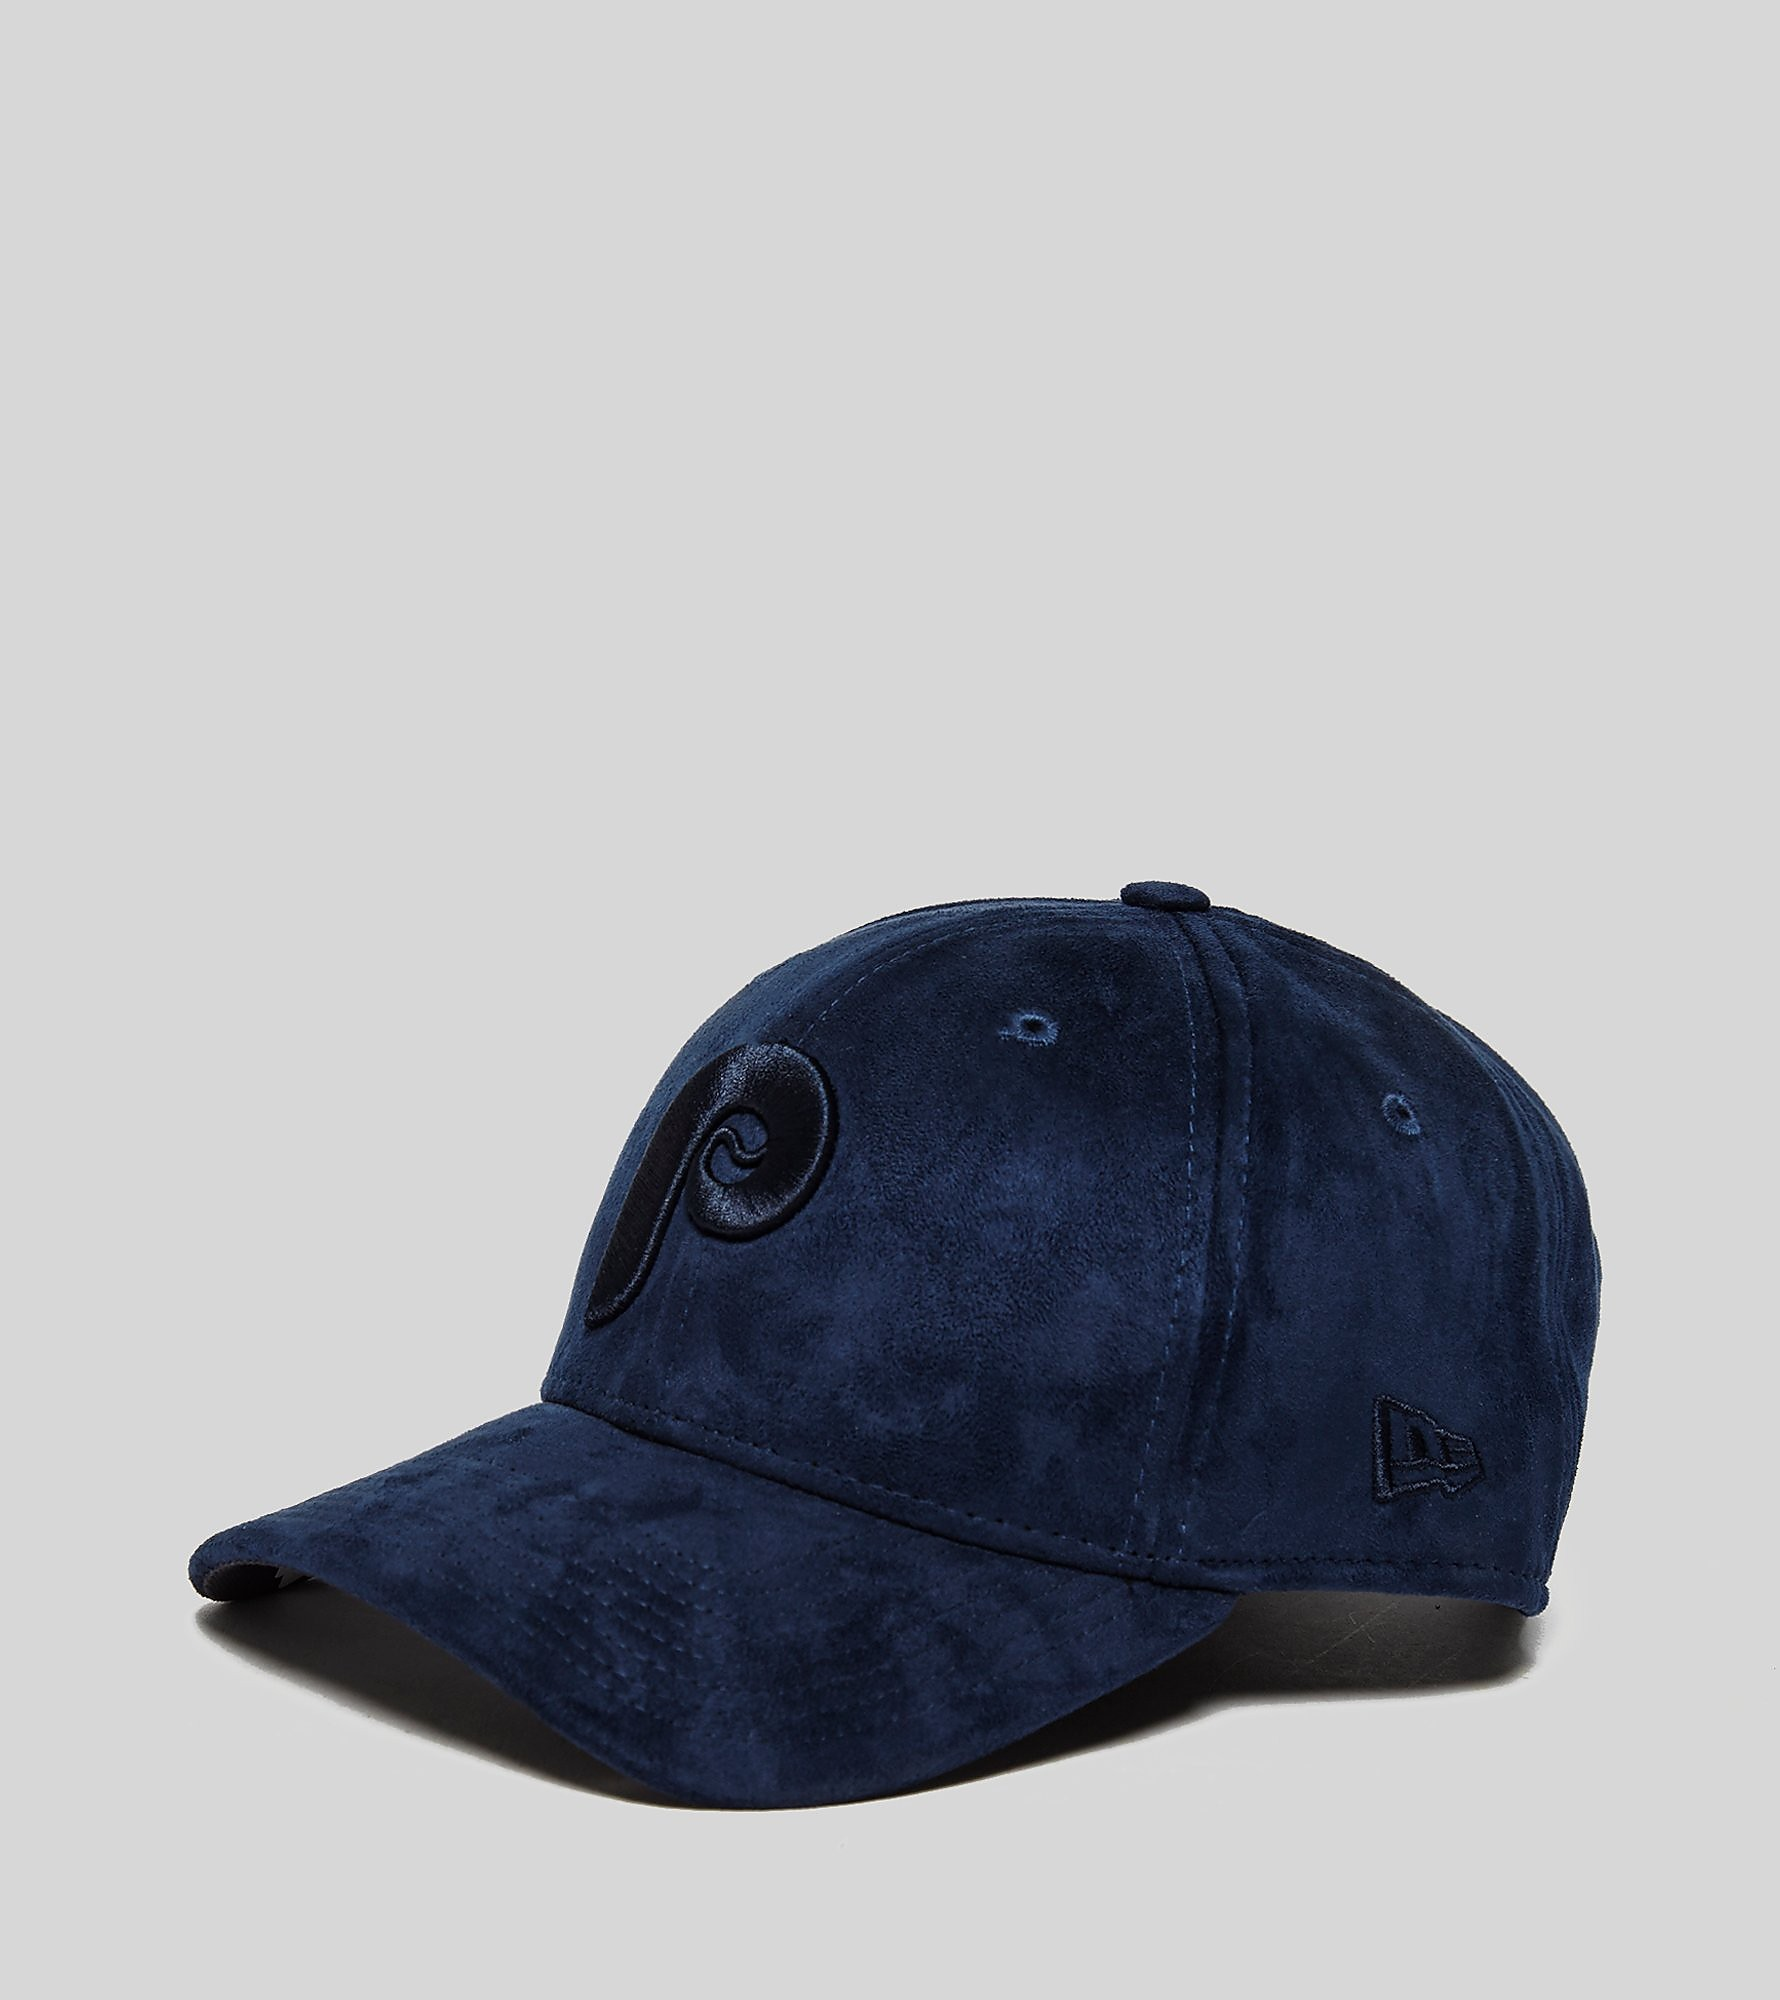 New Era 9FORTY Tone Suede Strapback Cap - size? Exclusive